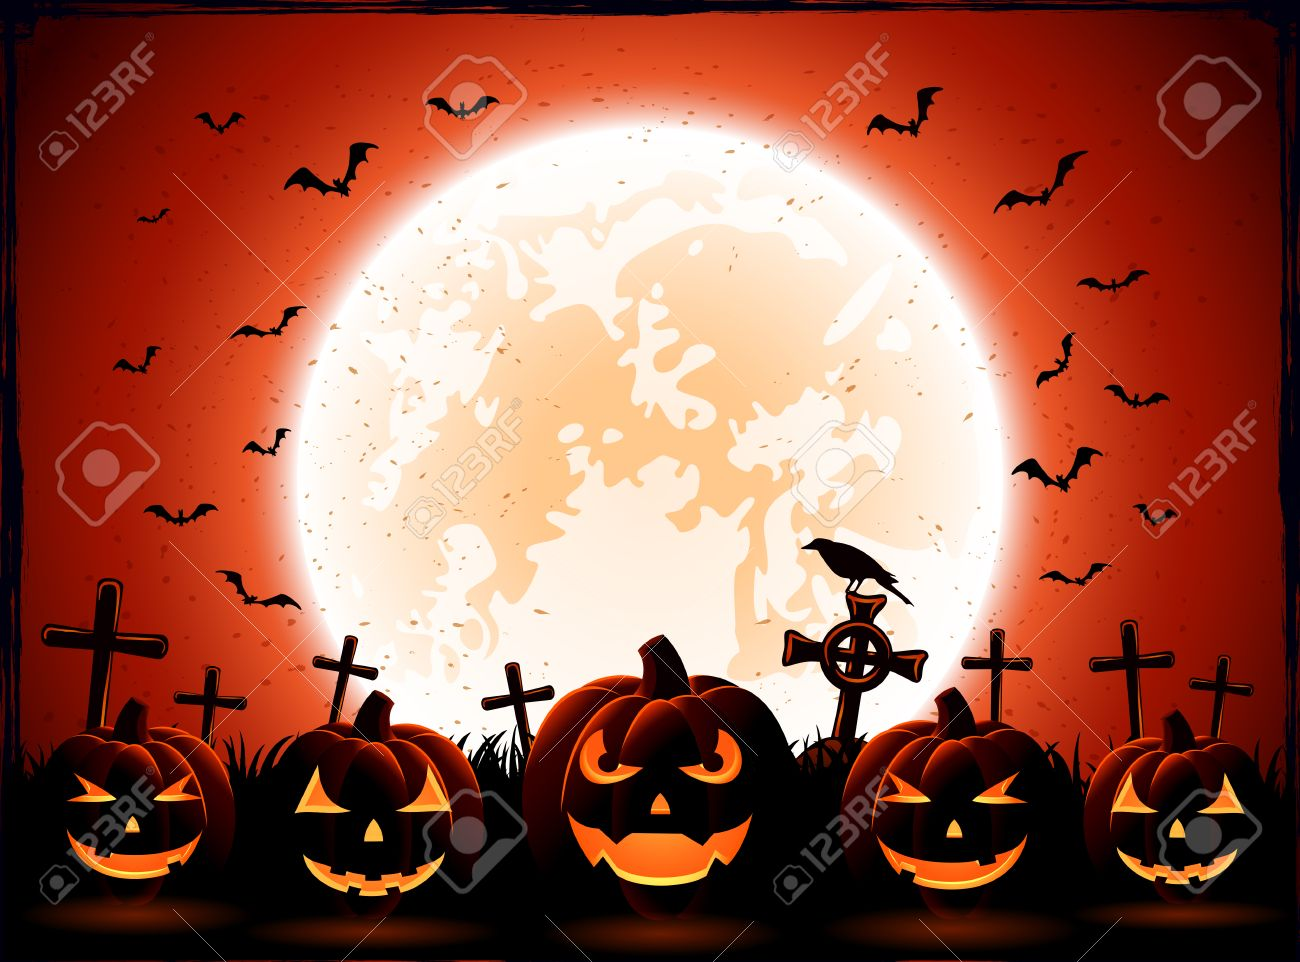 Halloween night with Moon and pumpkins on the cemetery background, illustration. - 44964514